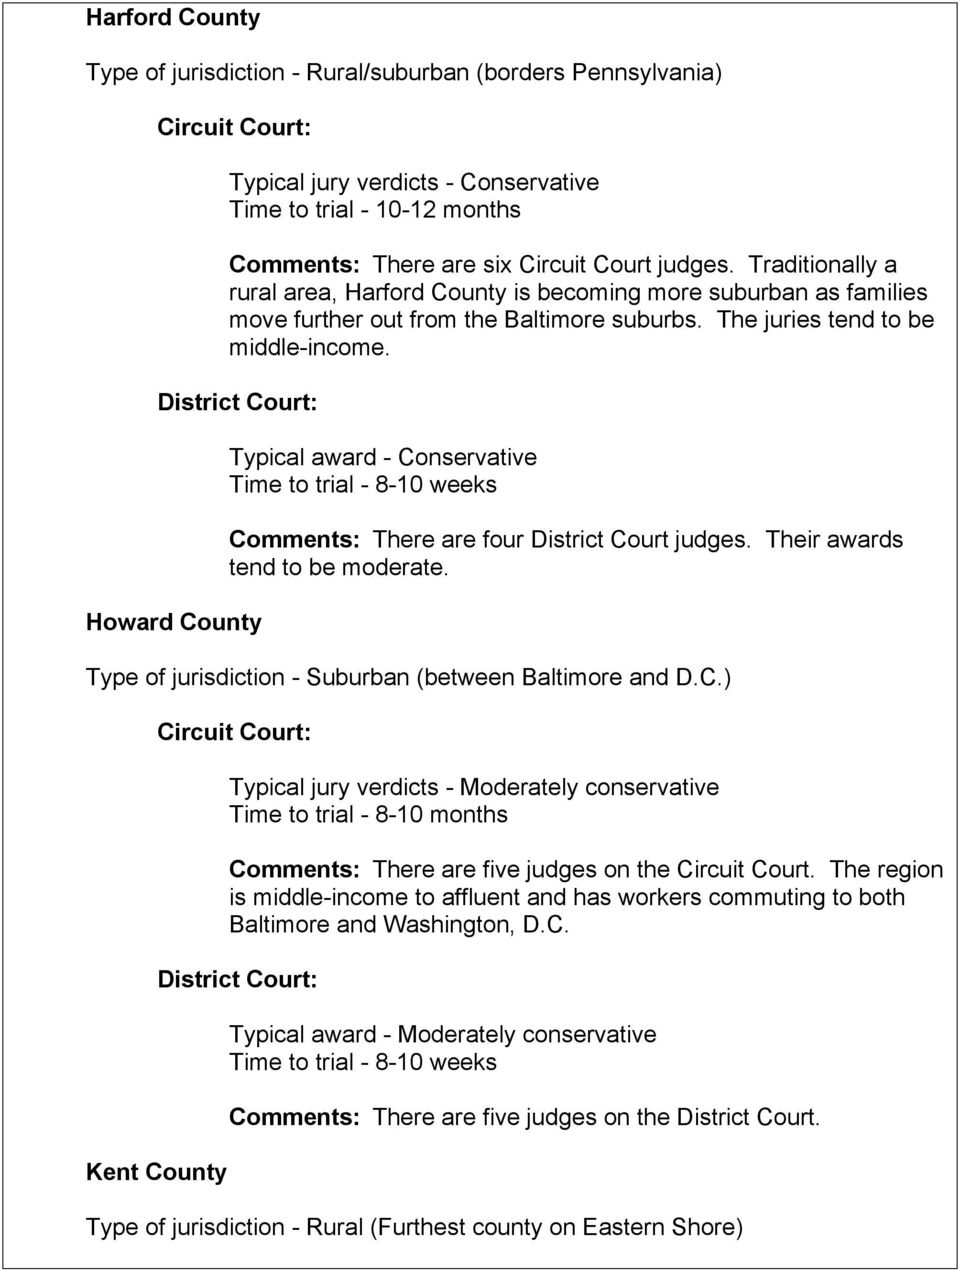 Howard County Typical award - Conservative Comments: There are four District Court judges. Their awards tend to be moderate. Type of jurisdiction - Suburban (between Baltimore and D.C.) Kent County Typical jury verdicts - Moderately conservative Time to trial - 8-10 months Comments: There are five judges on the Circuit Court.